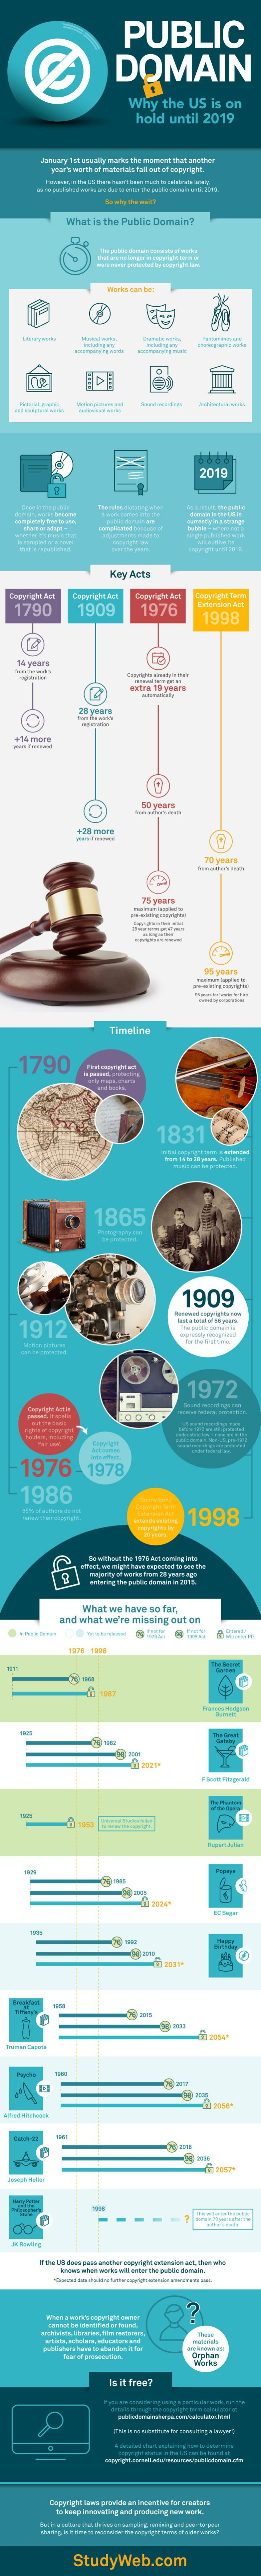 Public Domain: Why The Us Is On Hold Until 2019 #infographic